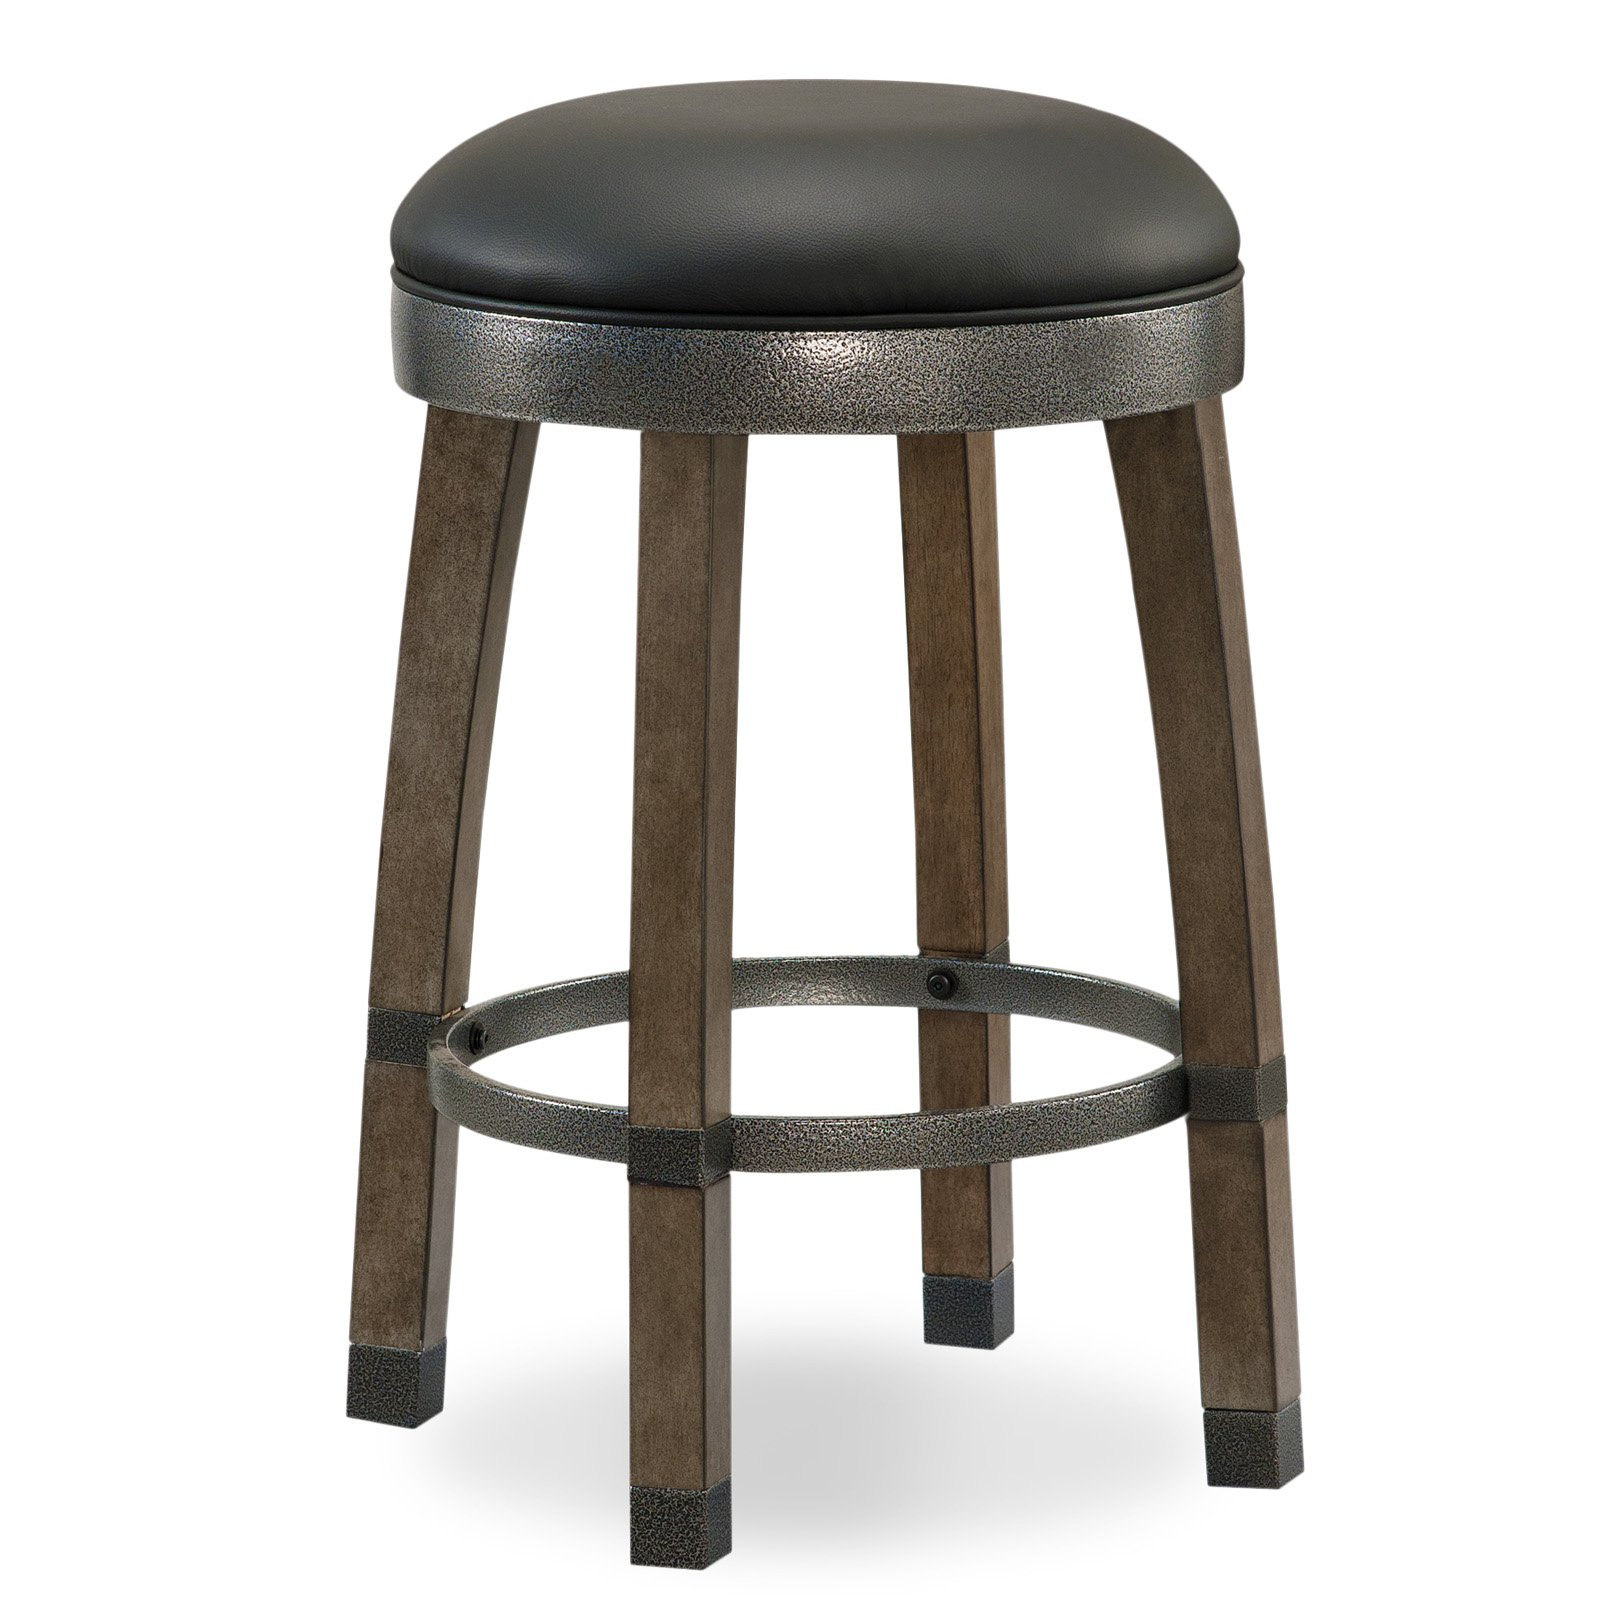 Leick Home 10118SN SB Wood Cask Stave Counter Height Stool with Faux Leather Seat, Set of 2, Multiple Colors by Leick Furniture